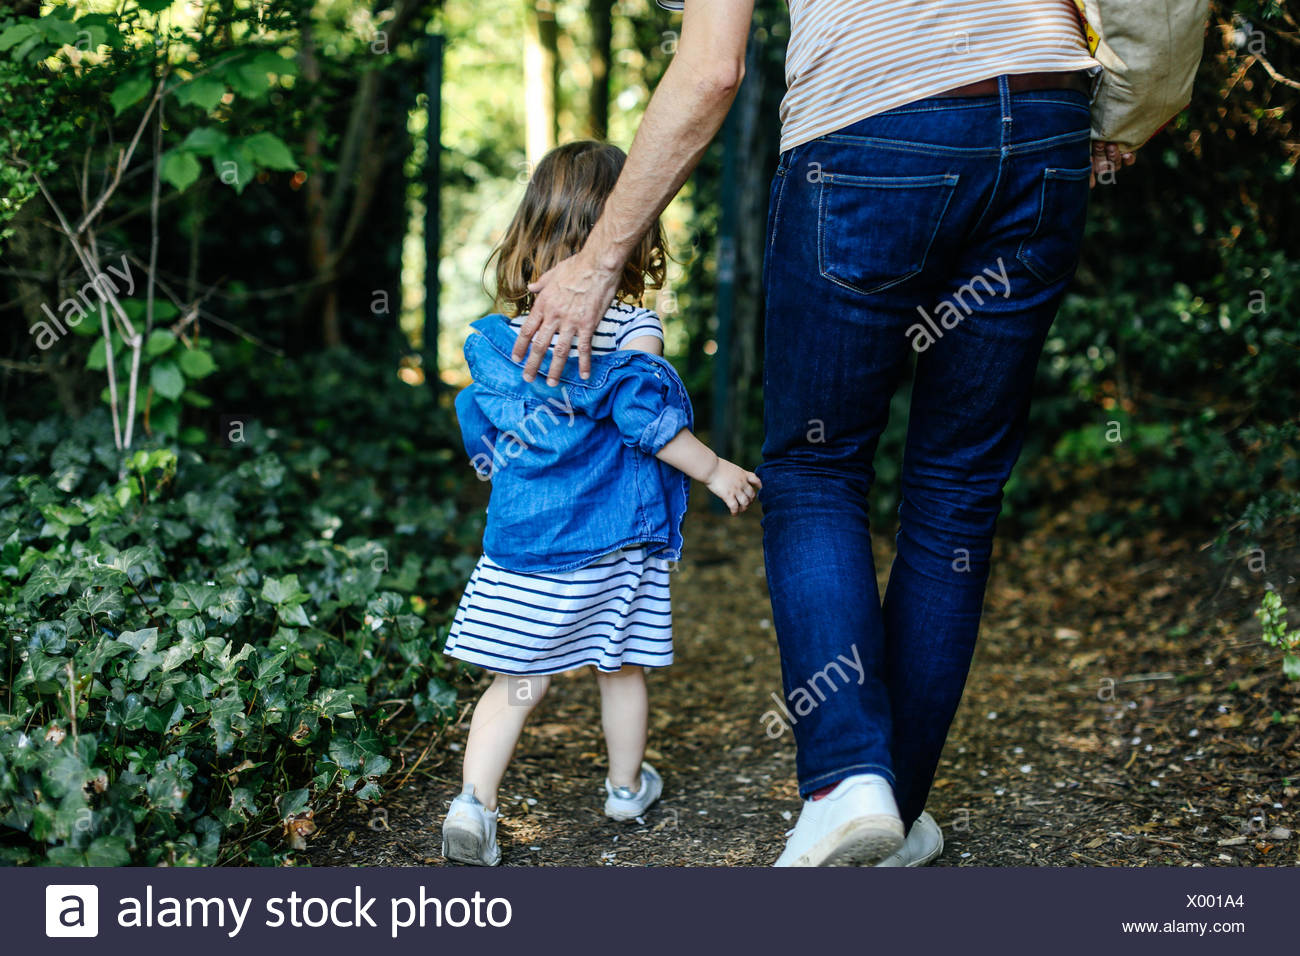 Father and little girl enjoying nature walk - Stock Image